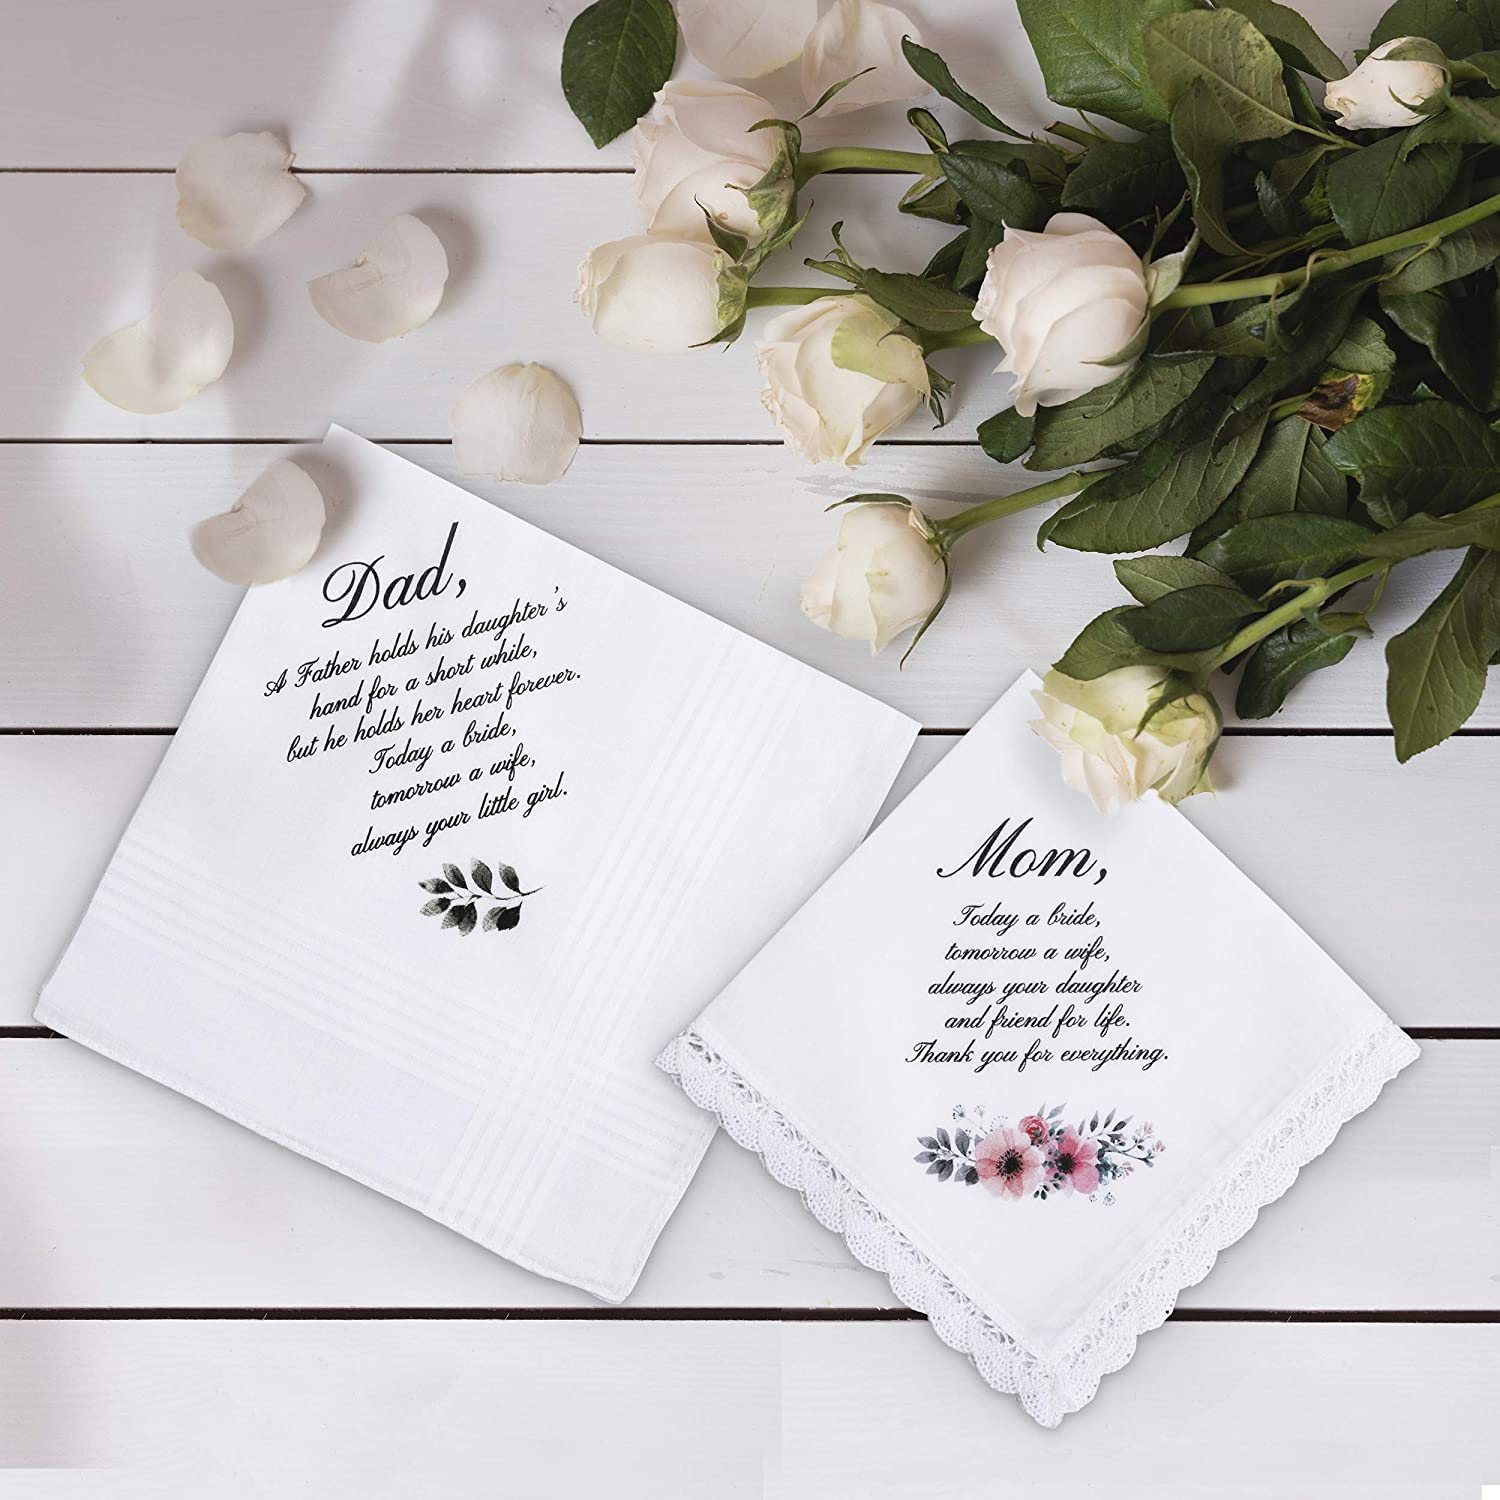 Mom and Dad gift Mother and Father of the Bride Gifts Wedding Handkerchief Set Bridesmaid Gifts Parents Wedding Gift DM008A